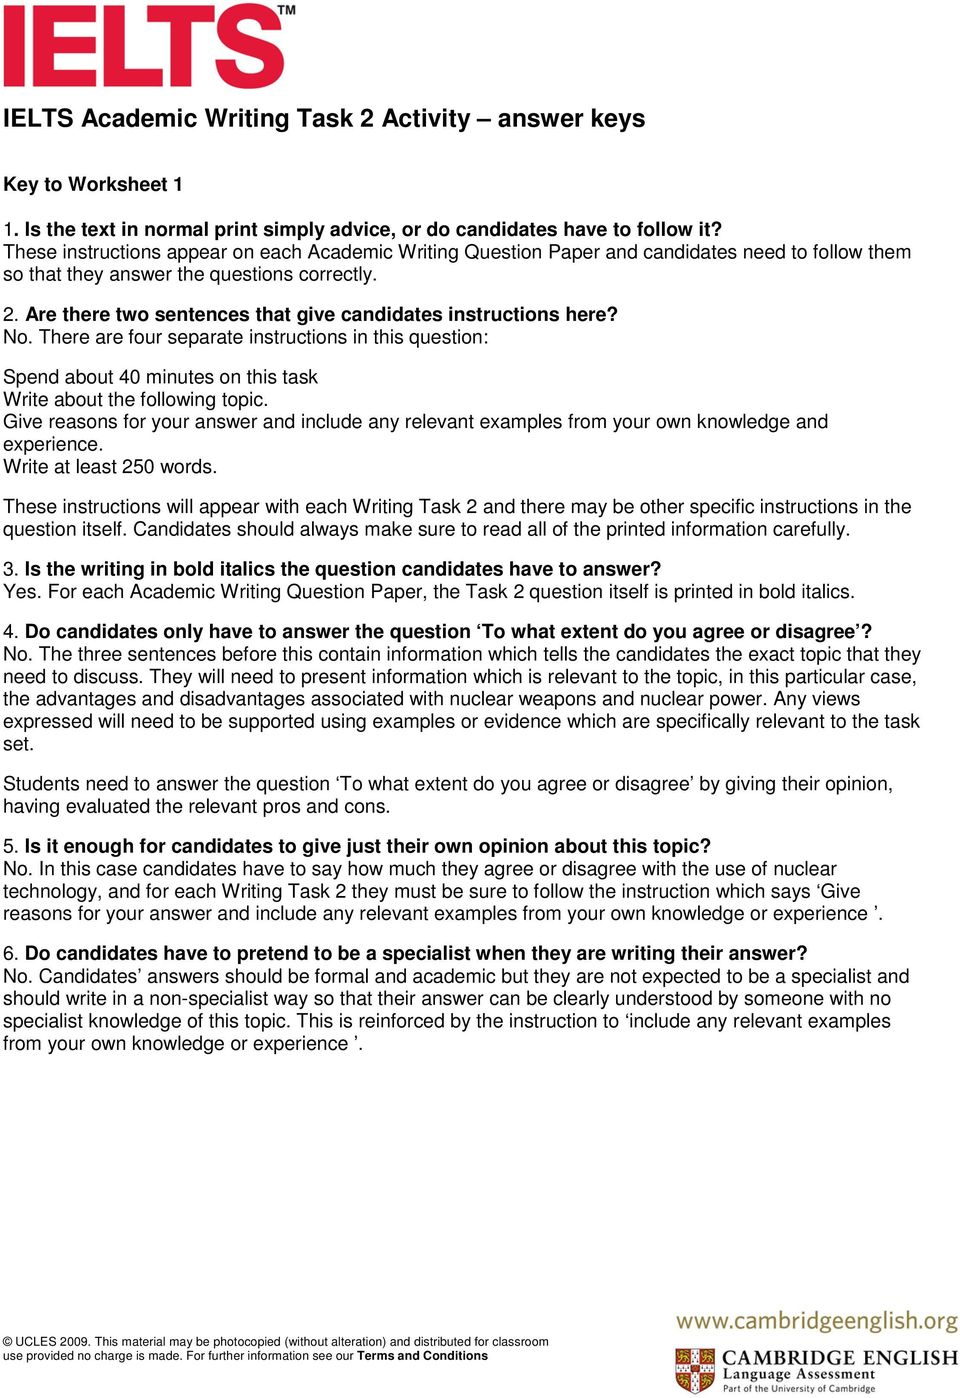 ielts writing task 2 topics academic with answers pdf